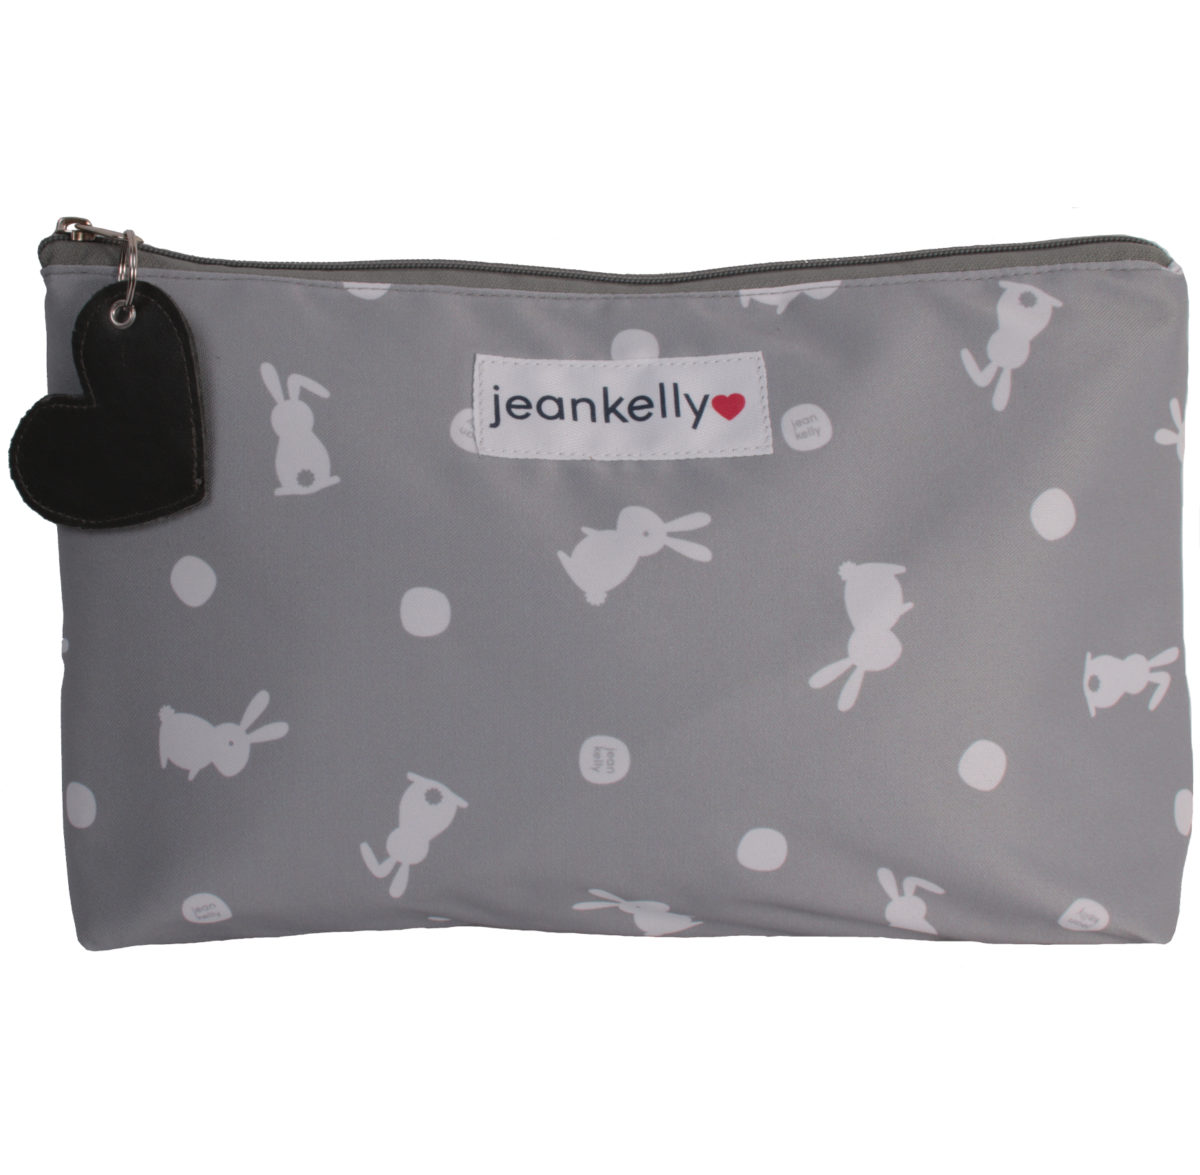 jeankelly_pouch grey